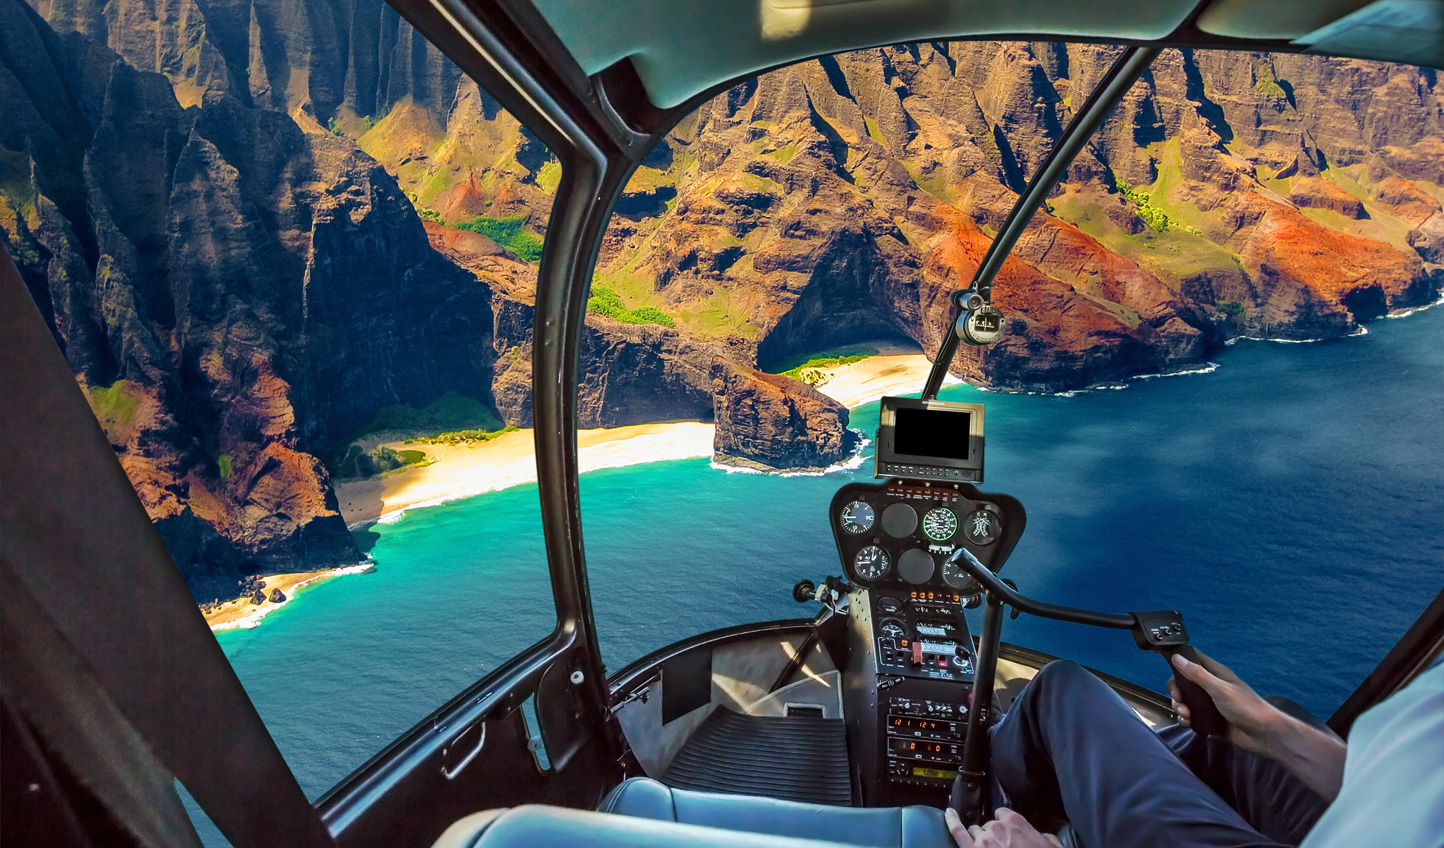 Soar over Kauai and get a fresh perspective